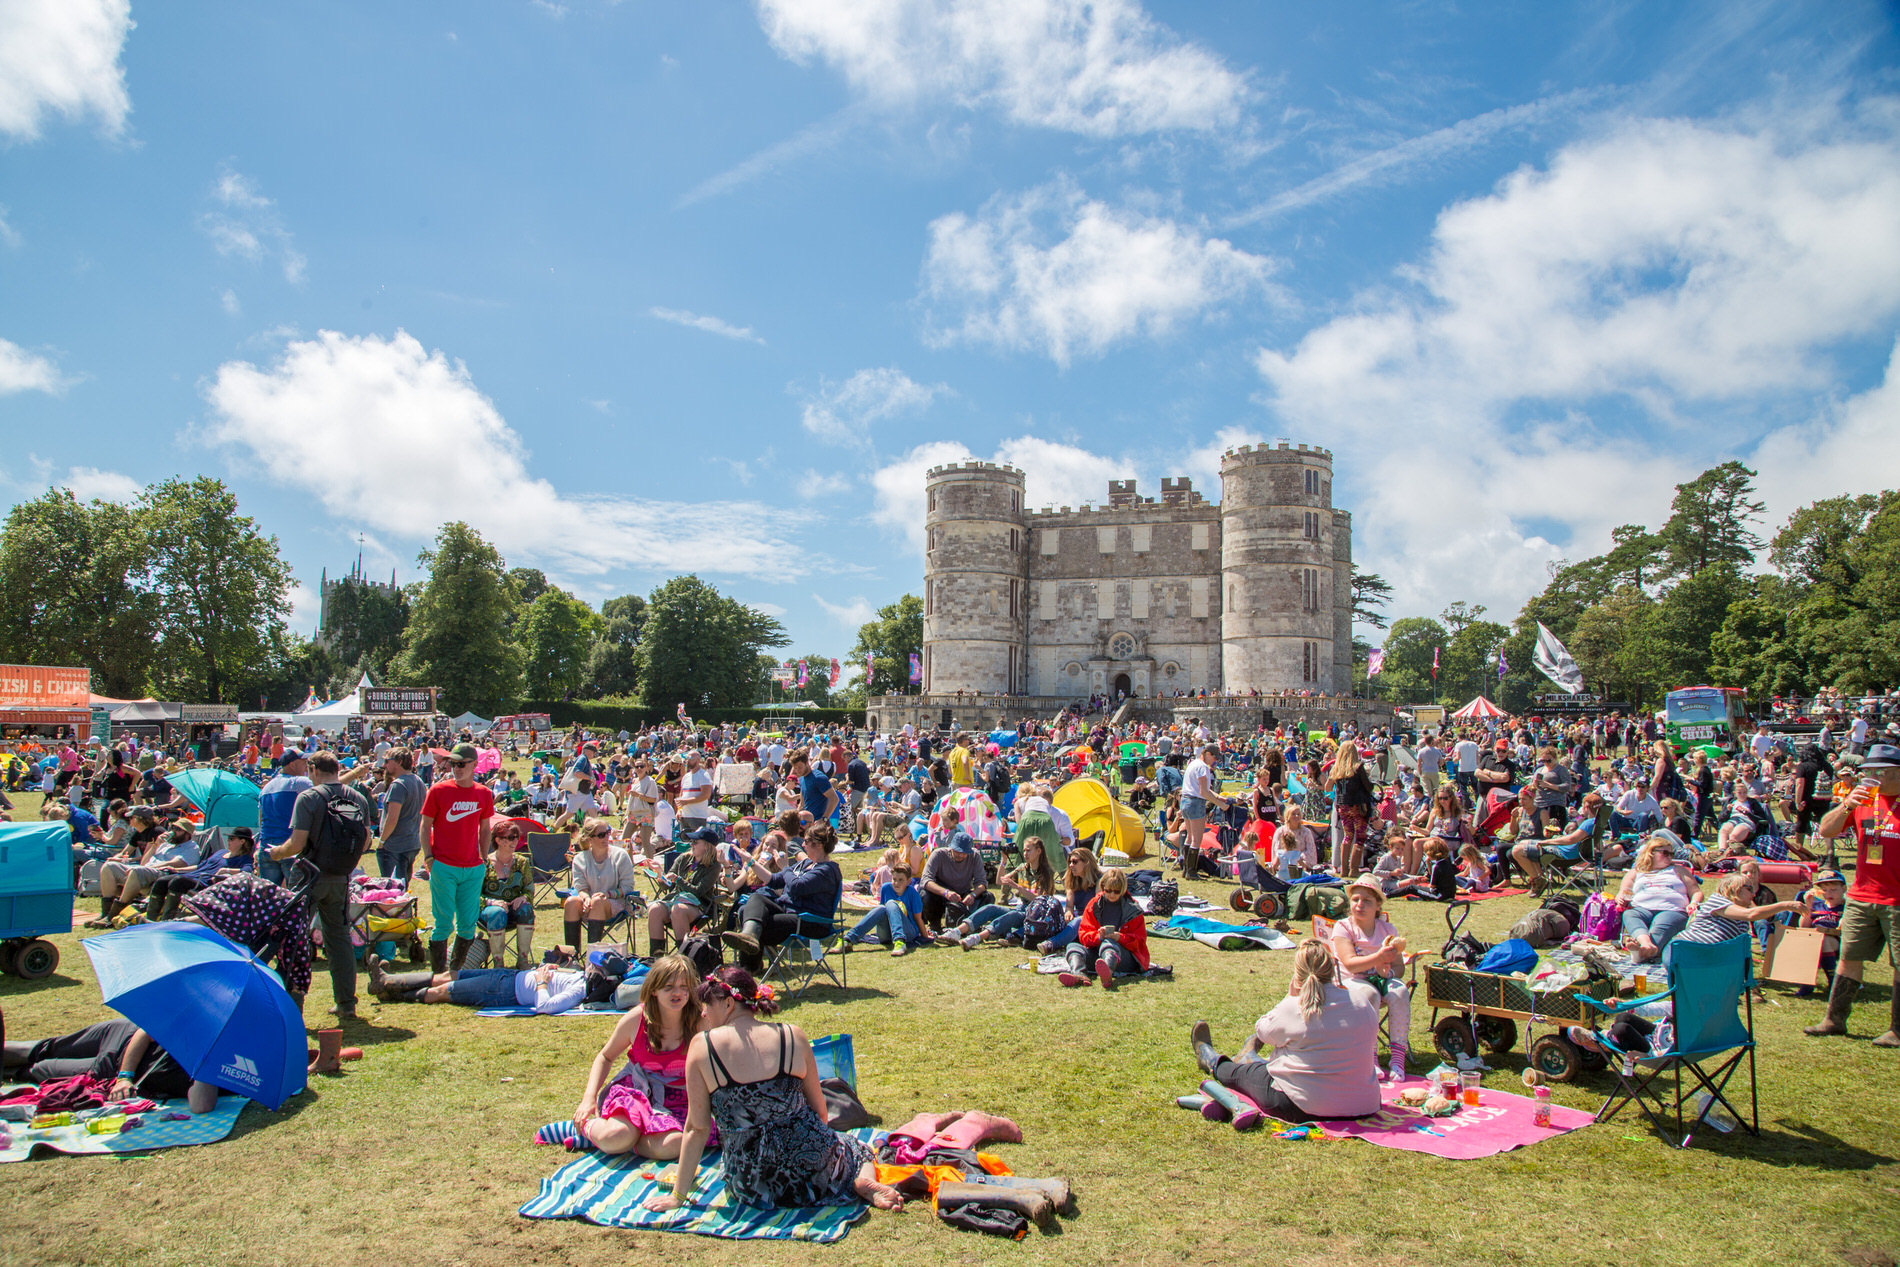 Camp Bestival 2017 Castle and Crowds